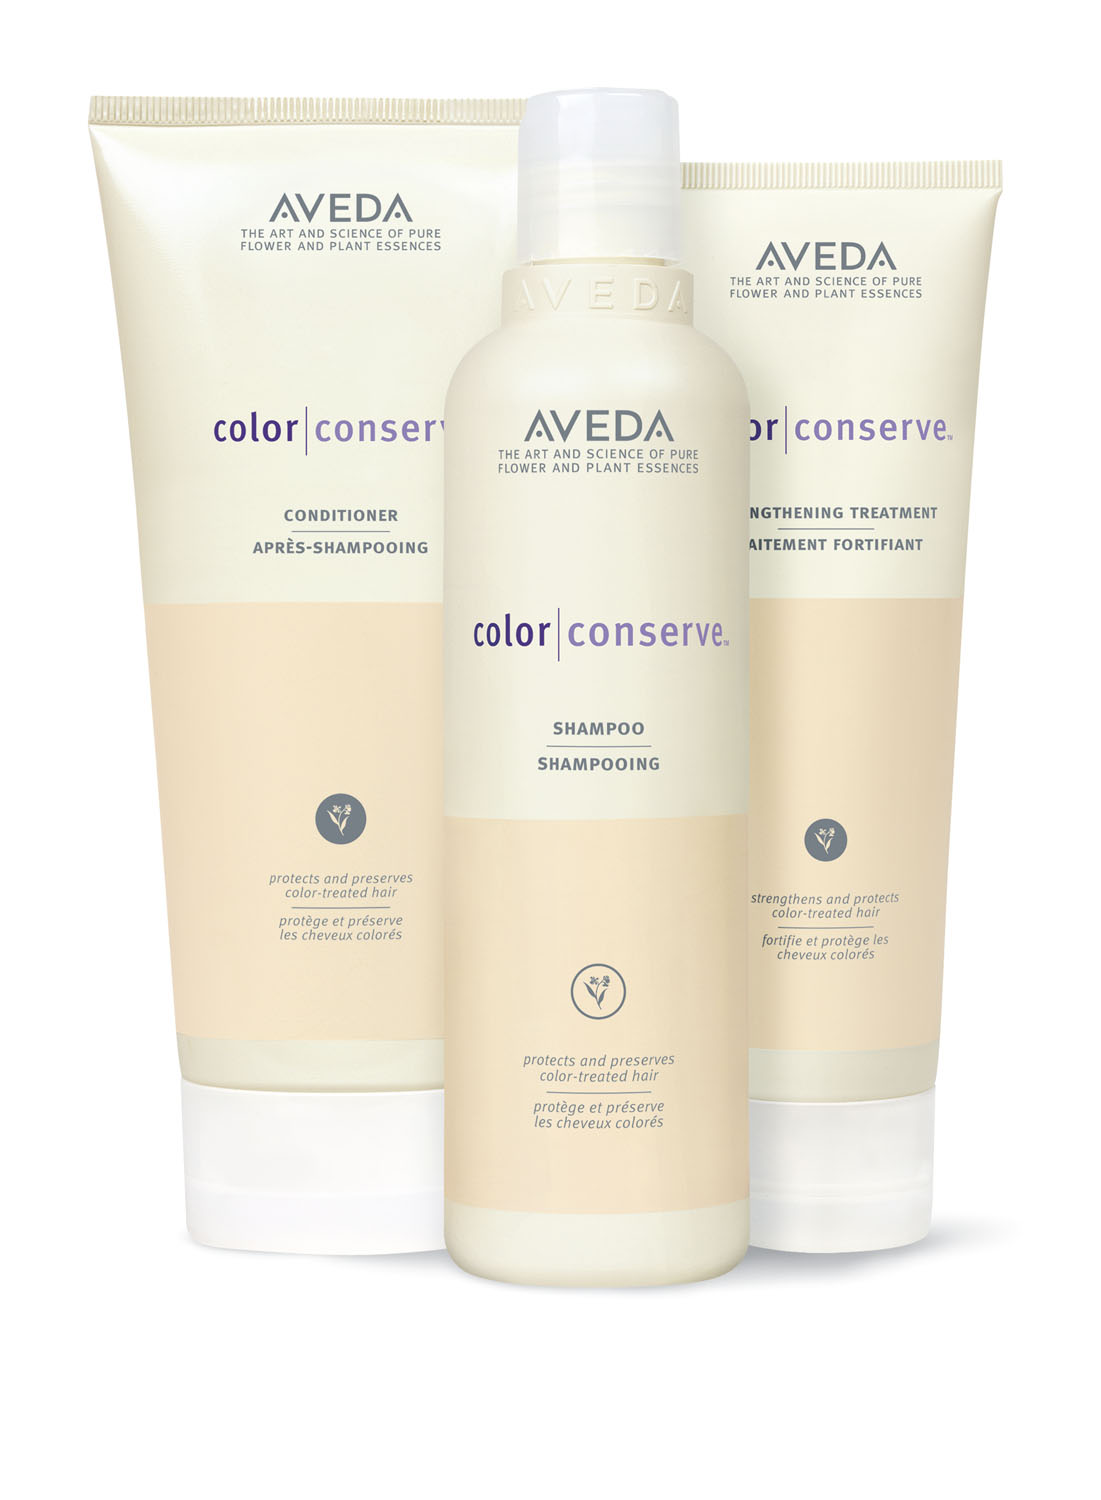 Is Aveda Color Conserve Sulfate Free